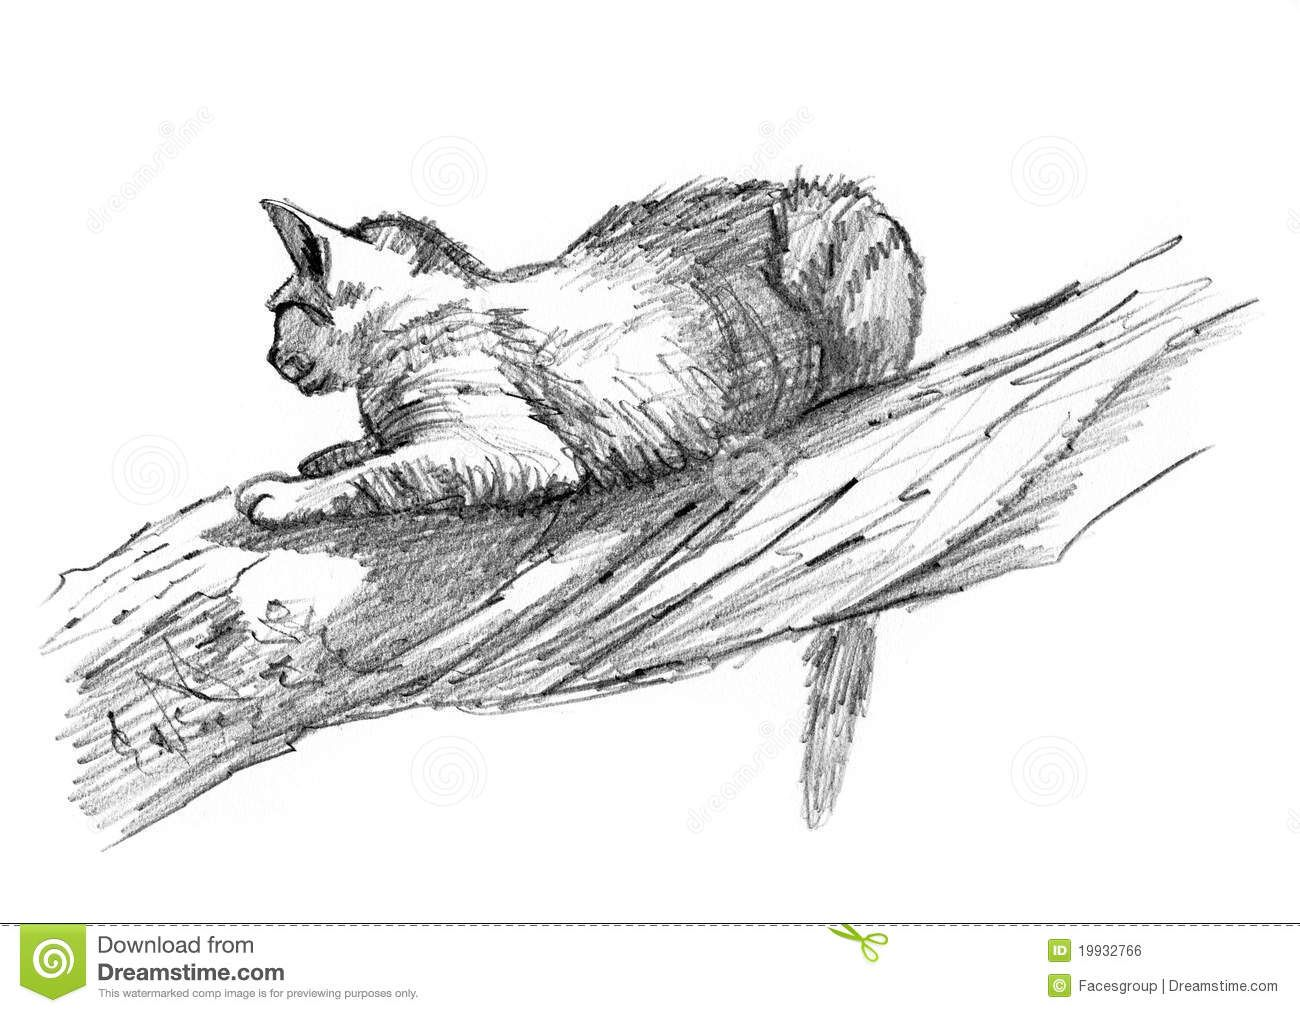 sand cat drawing sketch on a tree by facesgroup via dreamstime